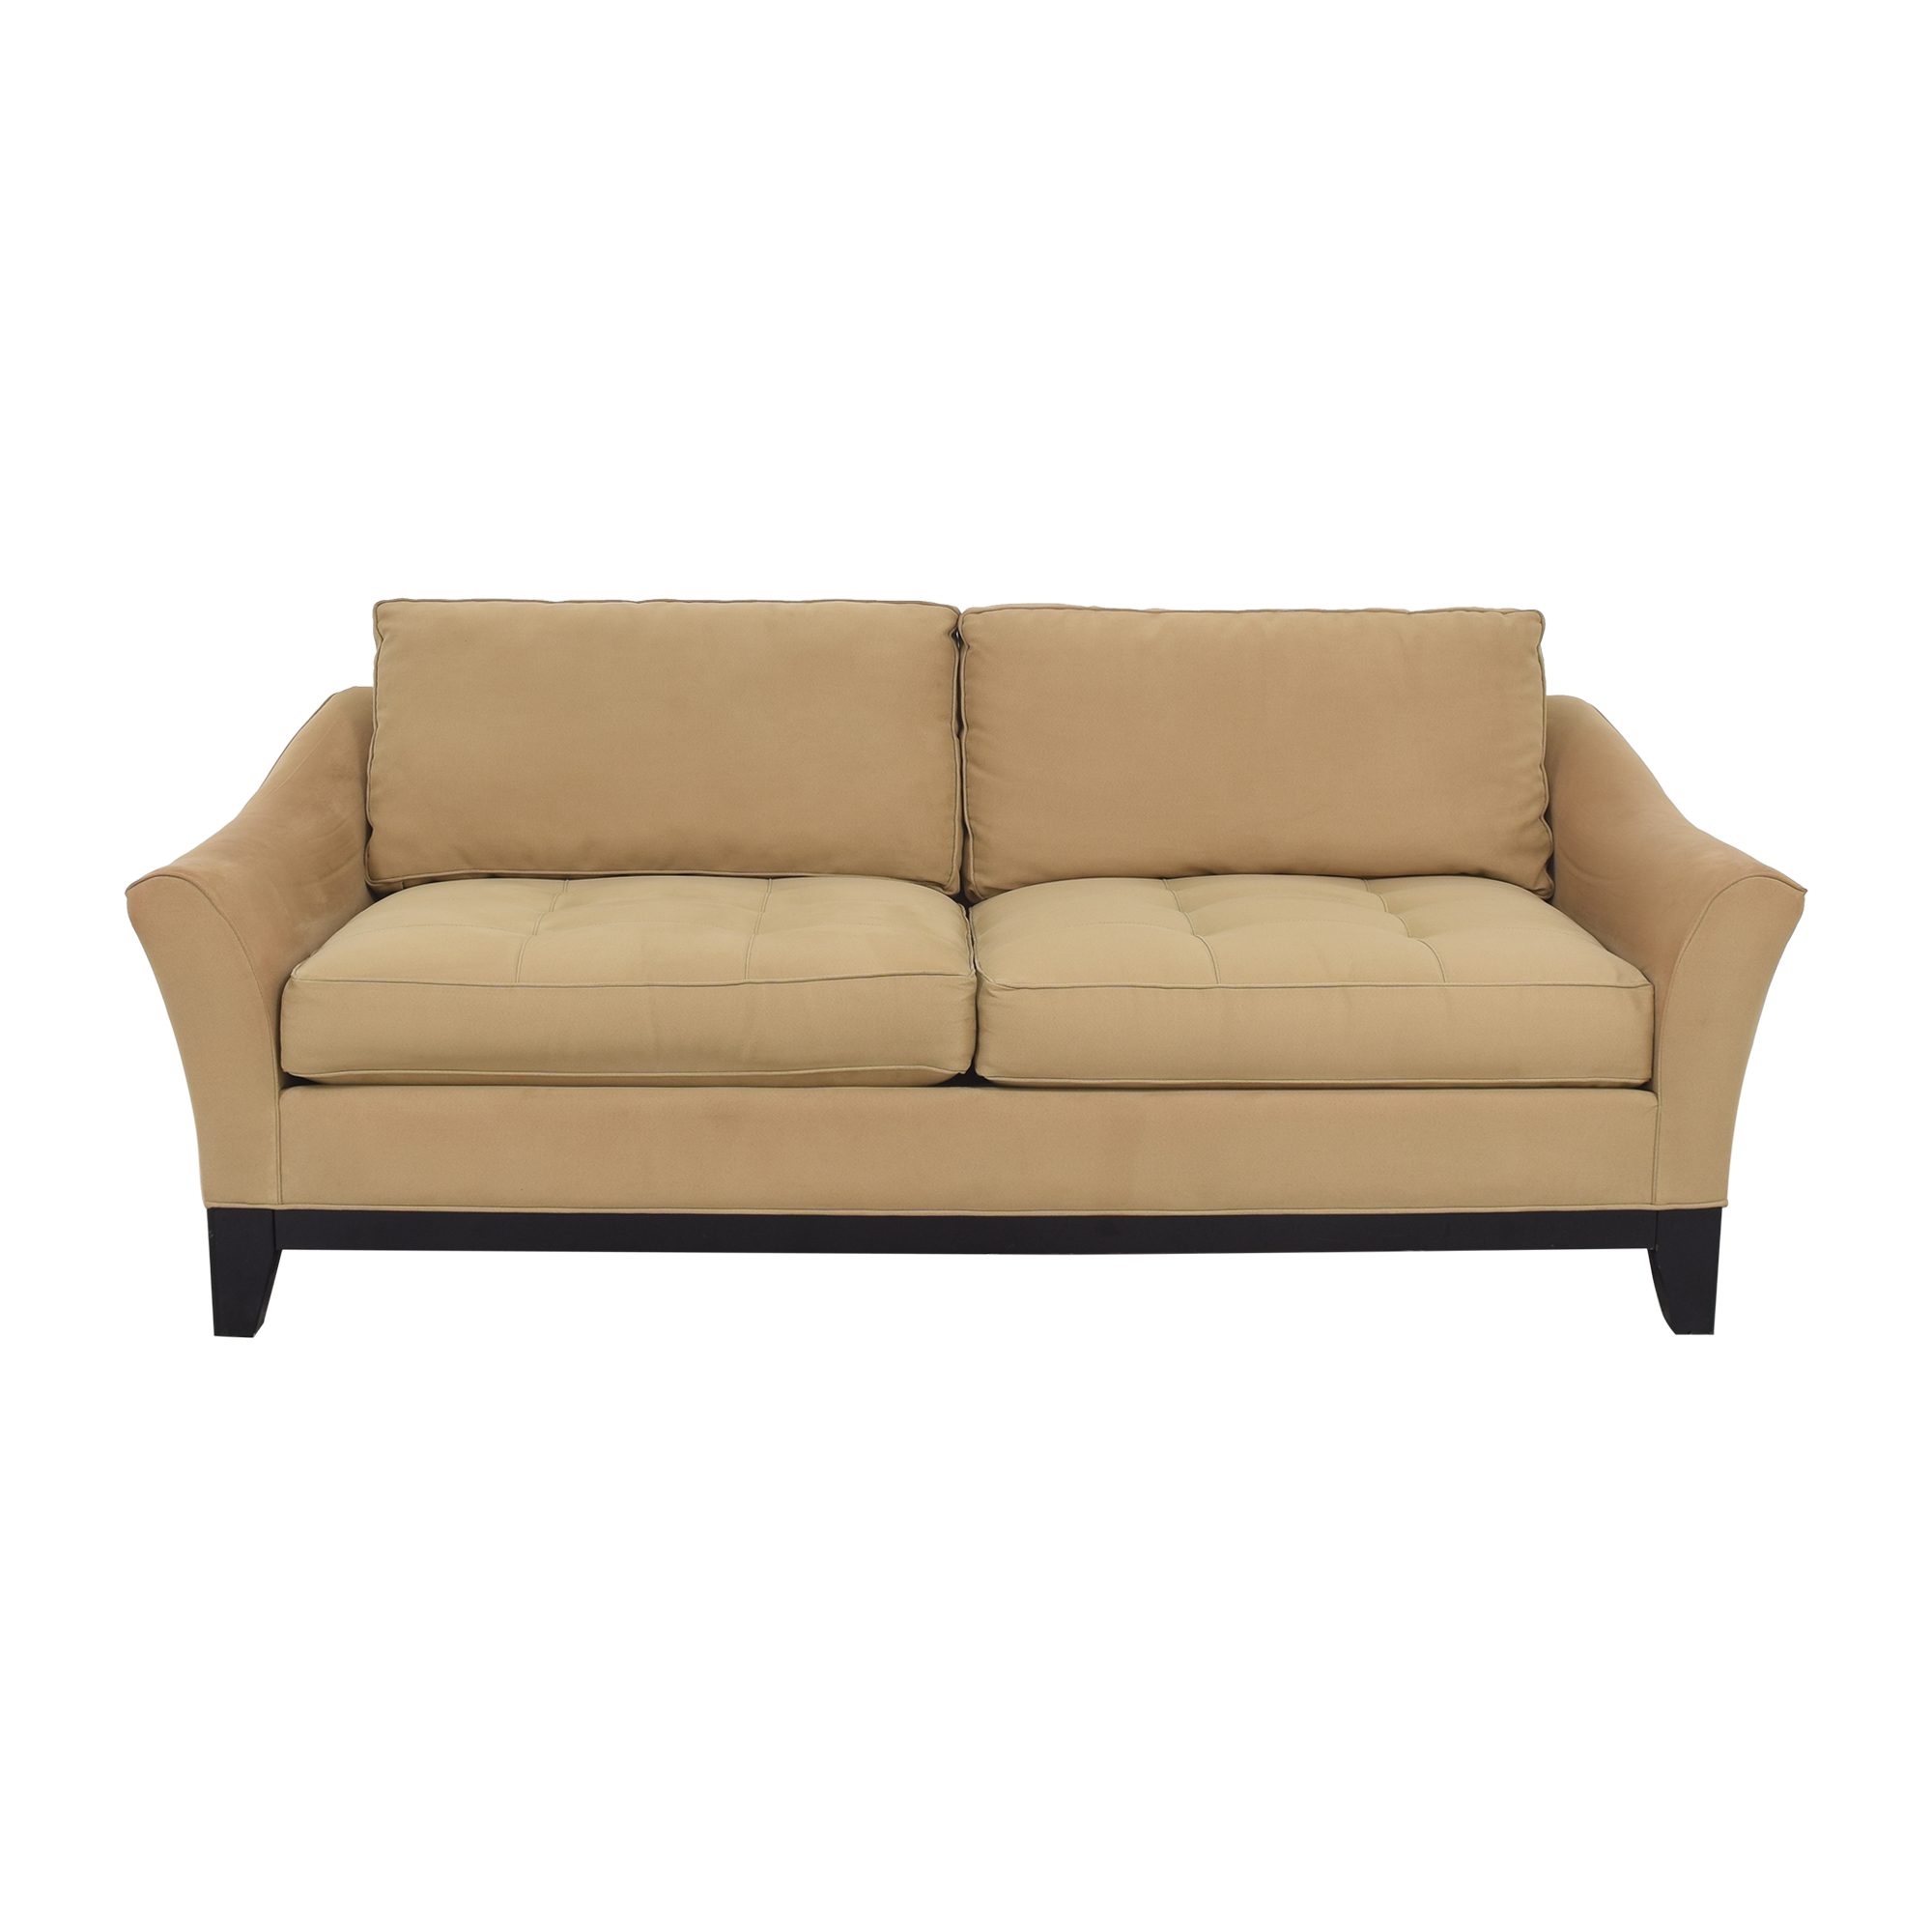 shop Raymour & Flanigan Rory Sofa Raymour & Flanigan Sofas